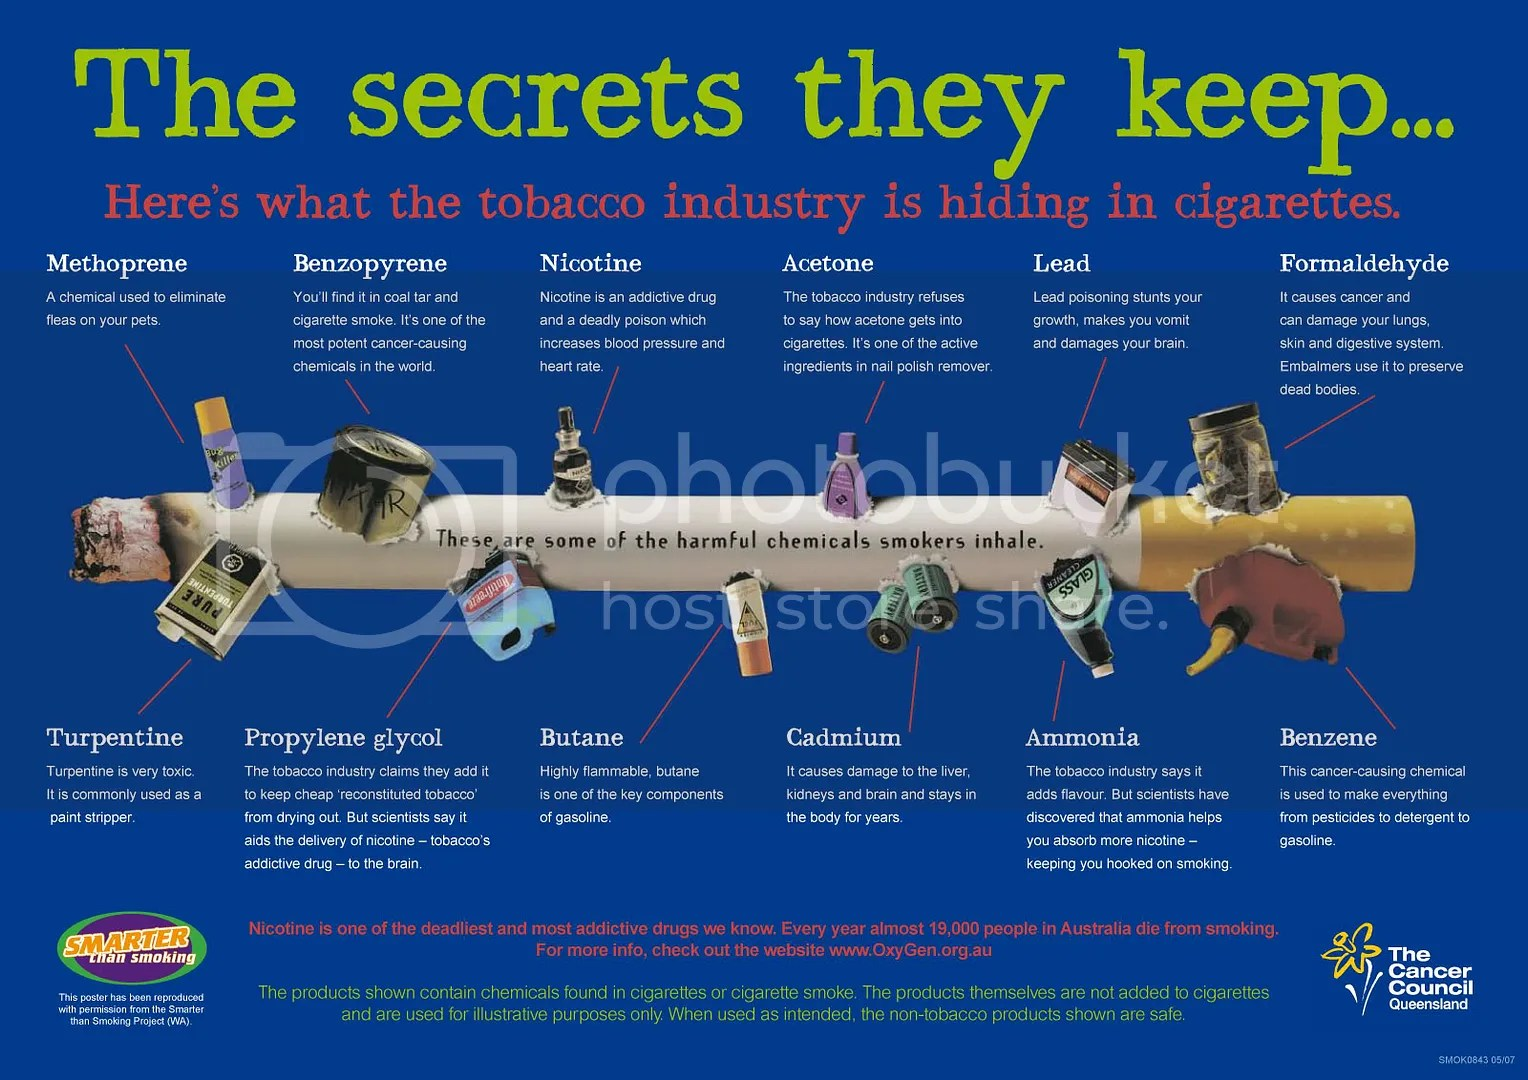 Here is what the tobacco industries are hiding in those cigarettes